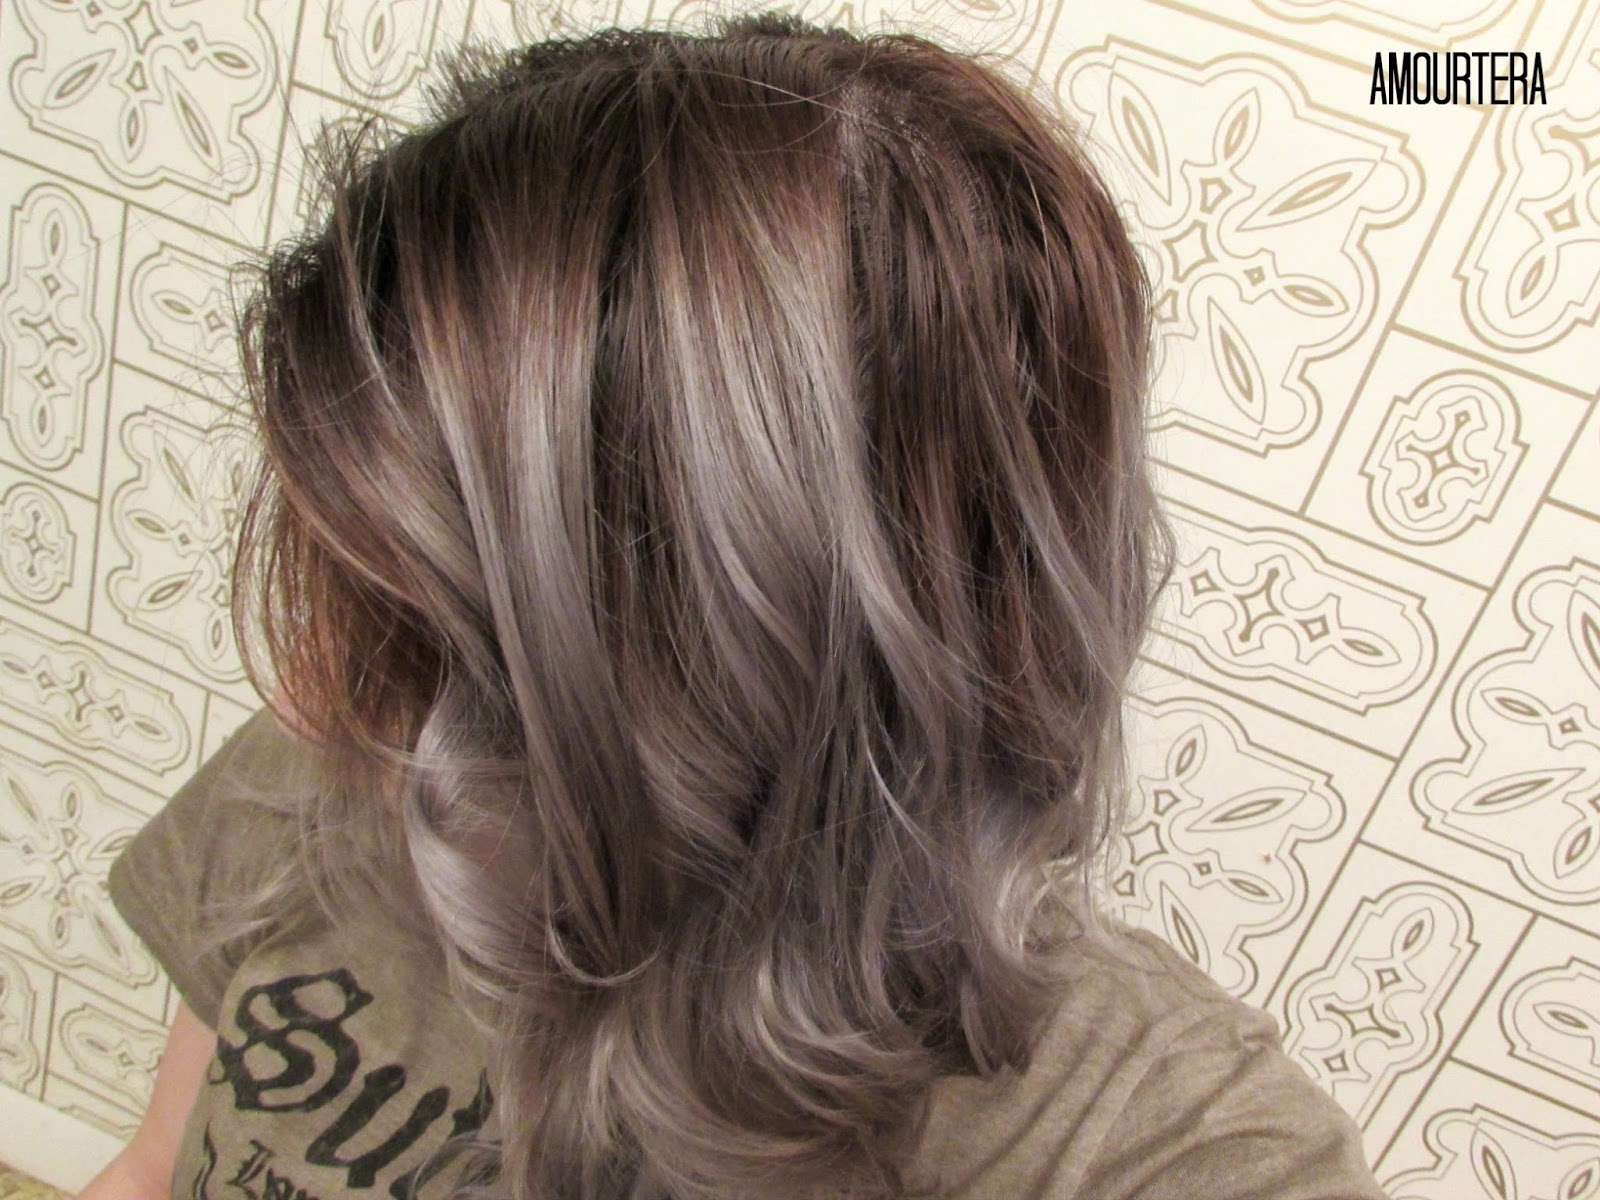 Amourtera How To Get Silvergray Hair At Home